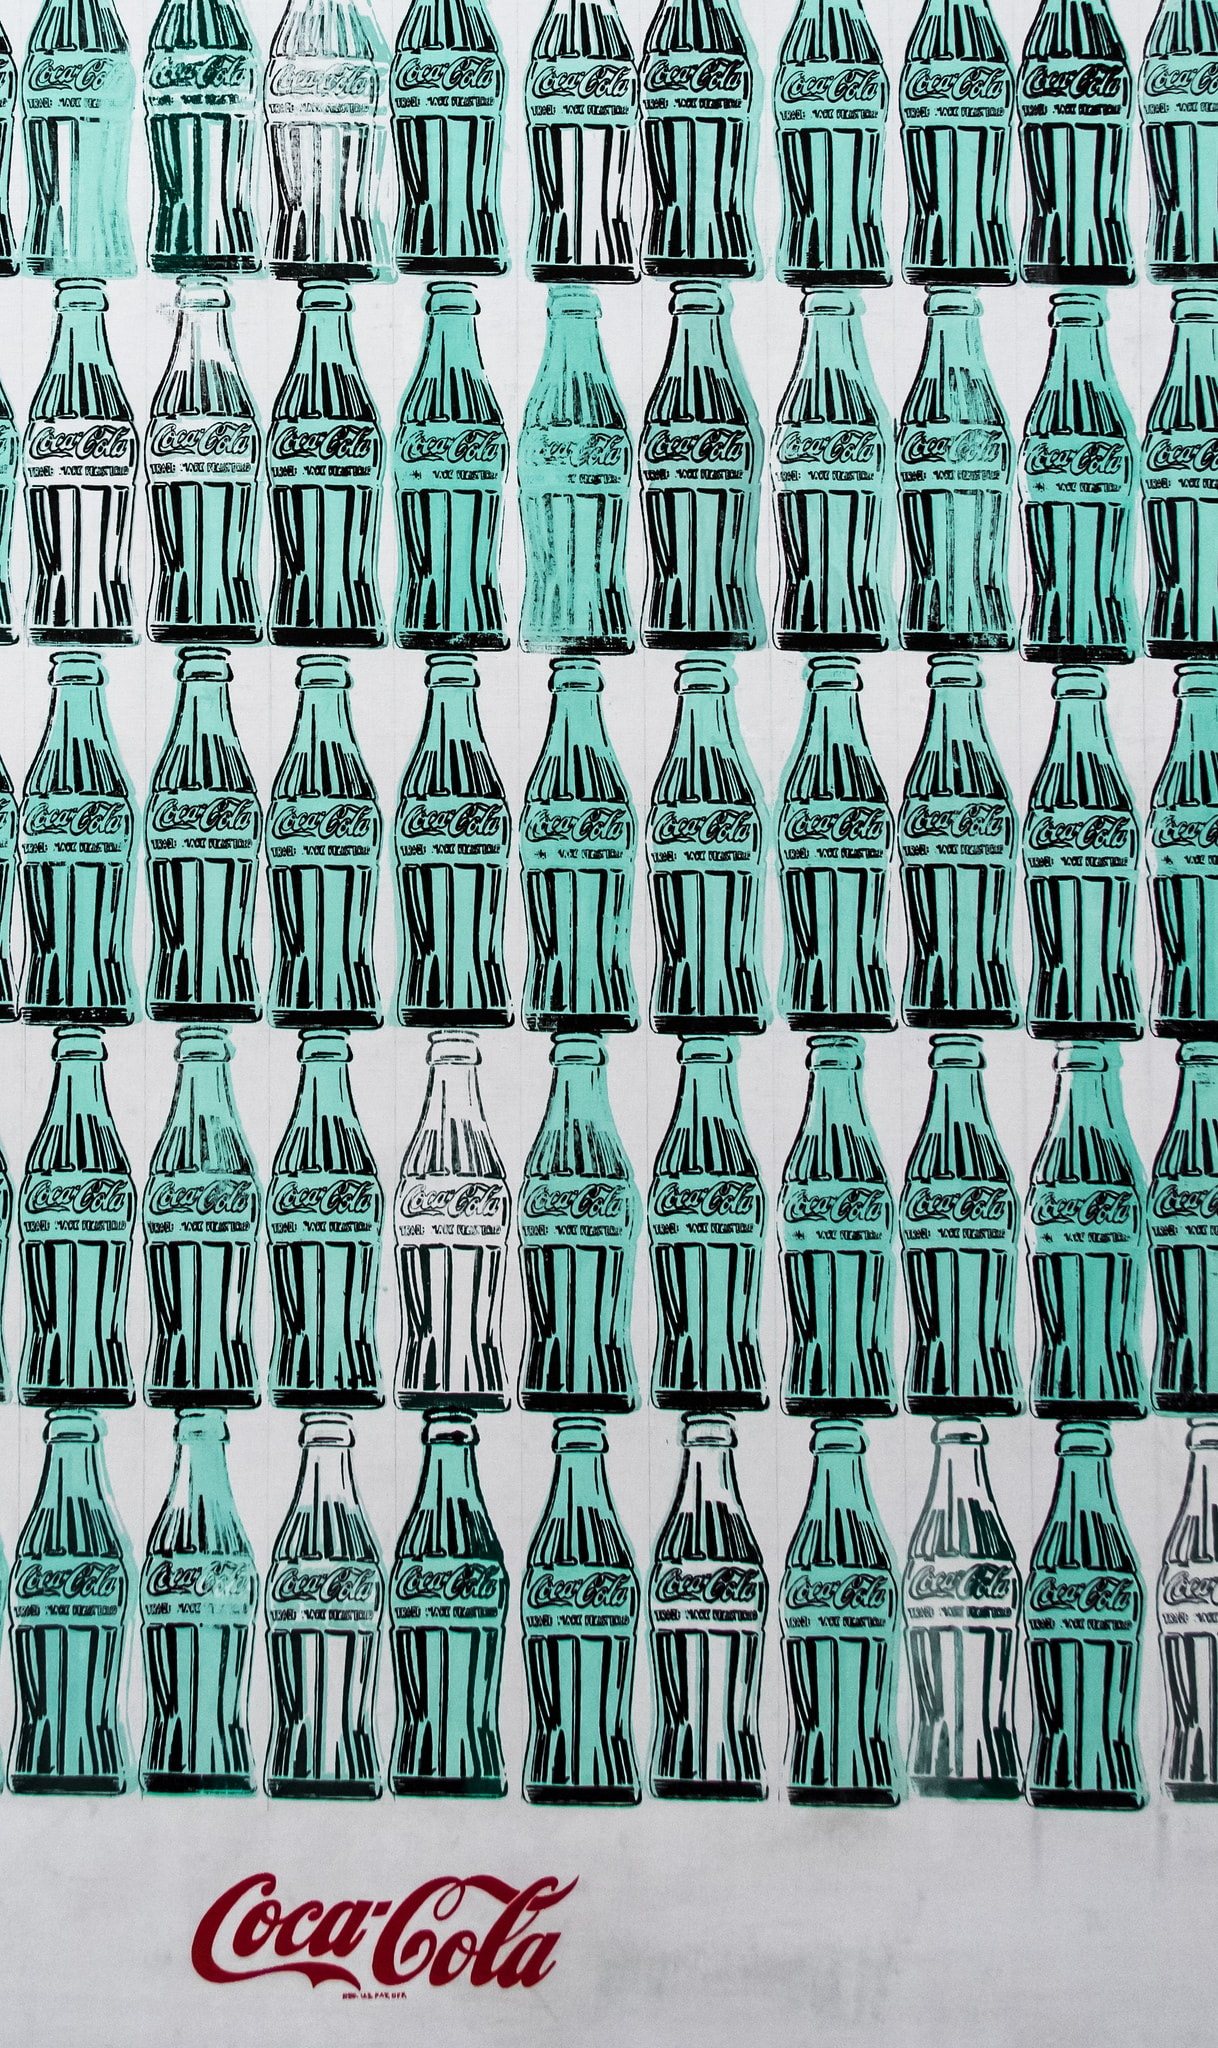 Detail - Green Coca-Cola Bottles (1962)   Photo by Andrew Moore via Flickr